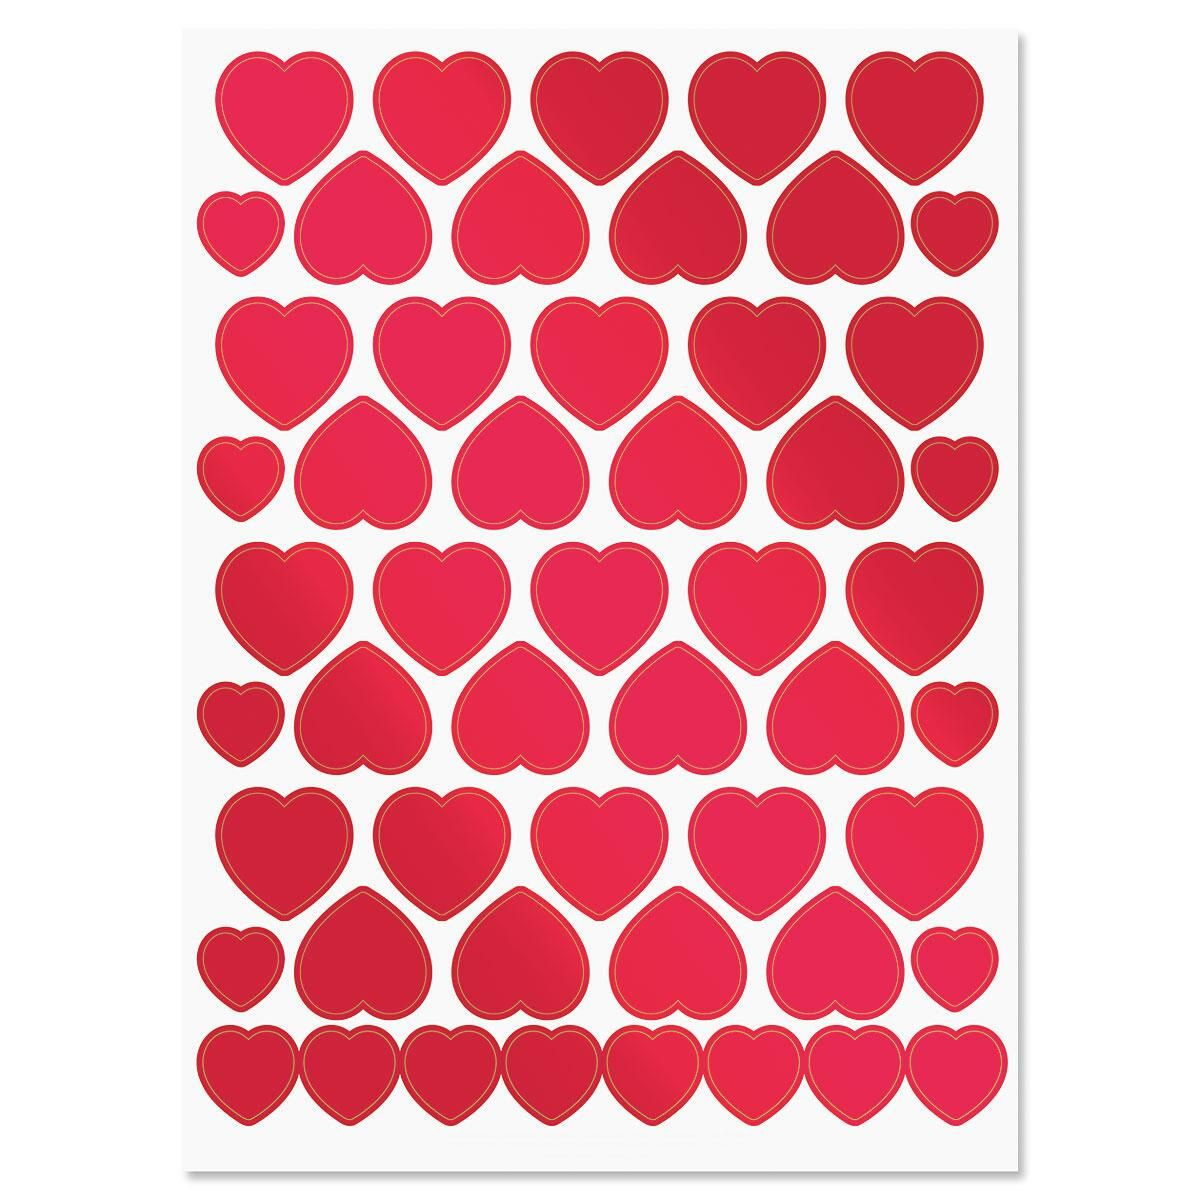 Foil Hearts Stickers